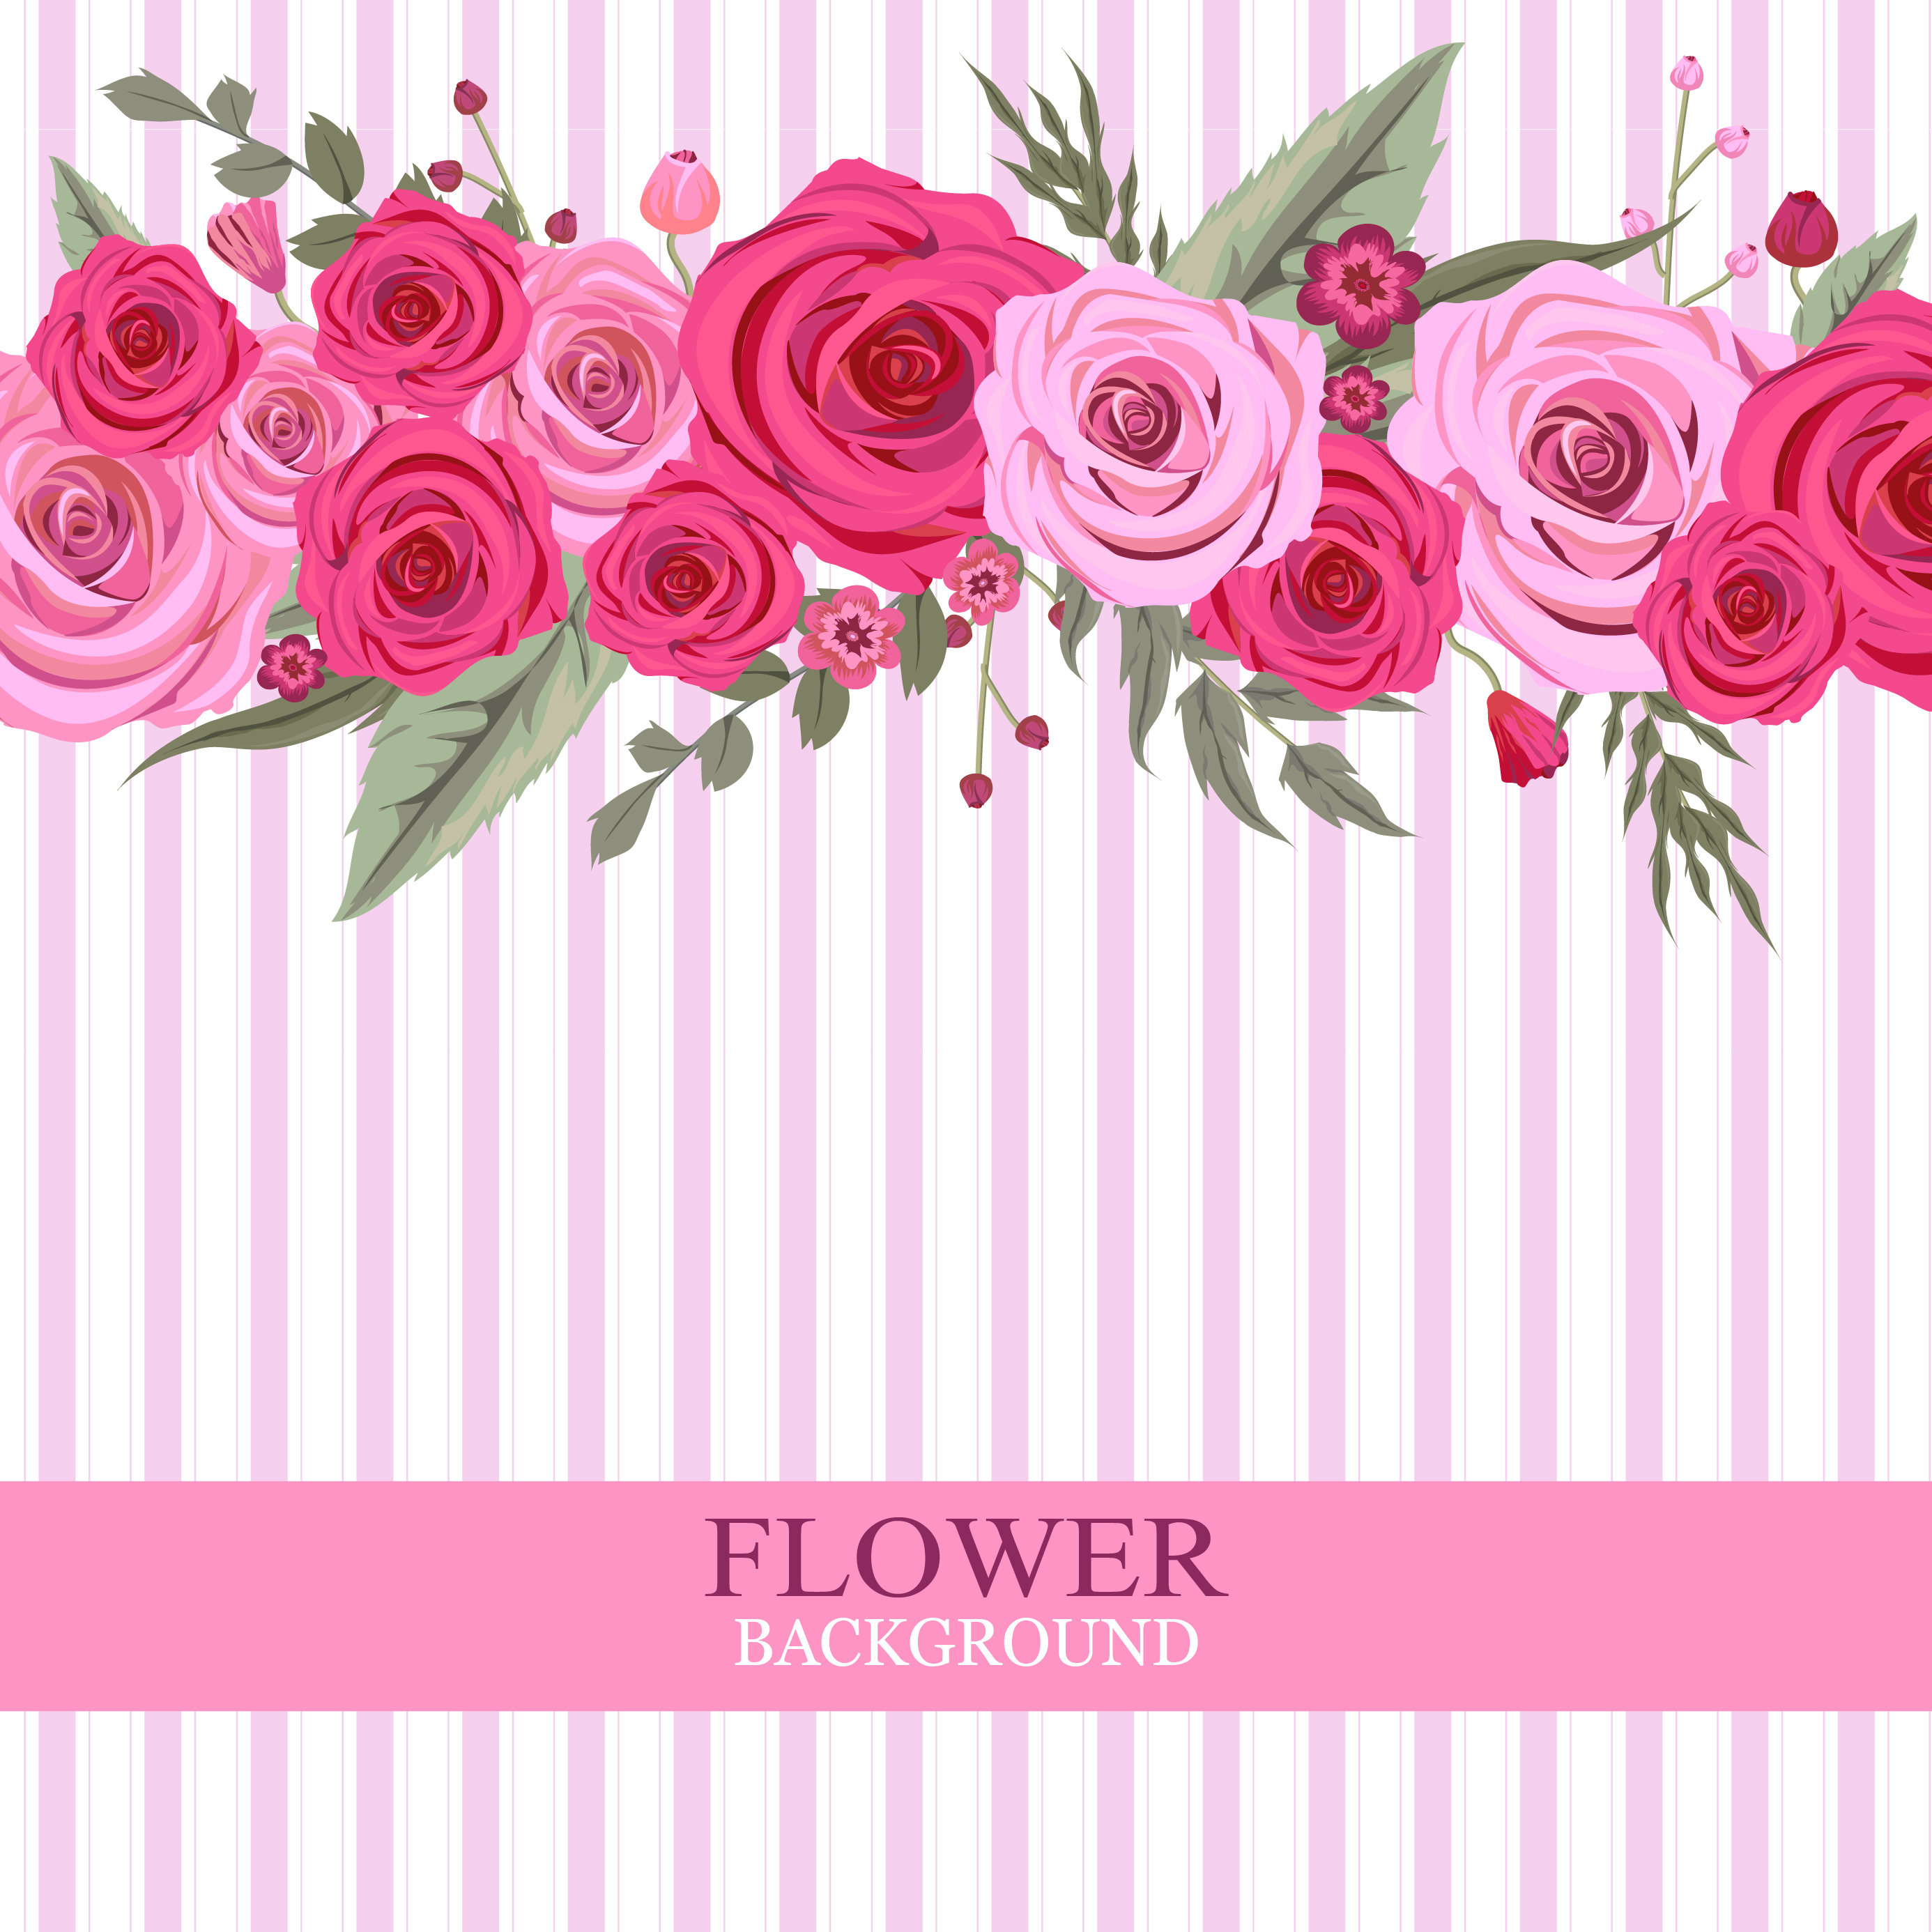 Pink Rose Flower Background Download Free Vectors Clipart